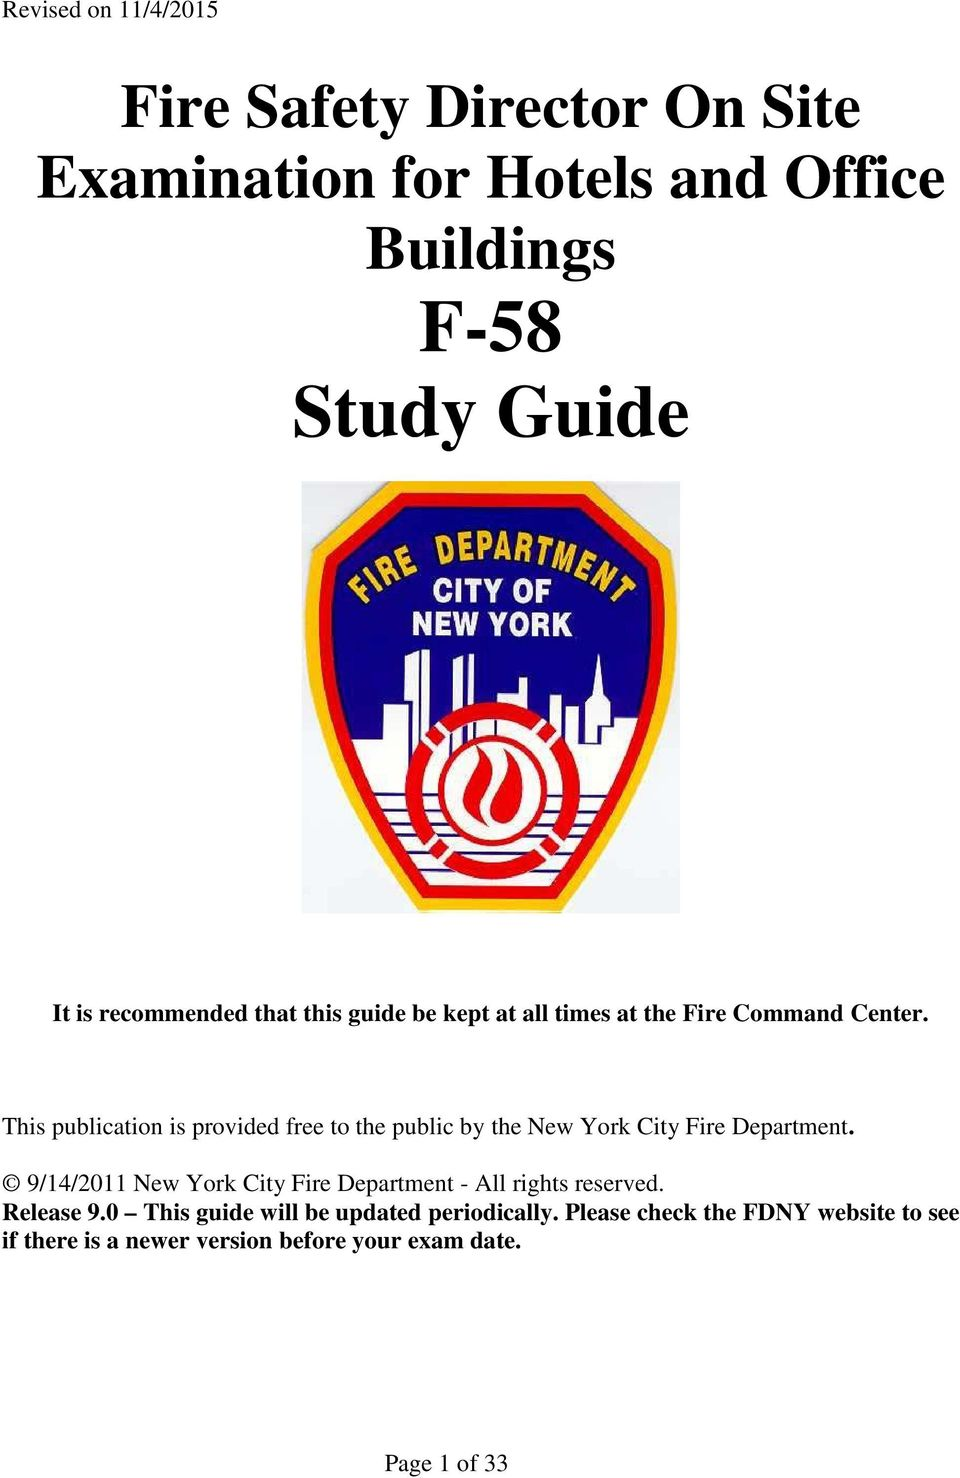 This publication is provided free to the public by the New York City Fire Department.